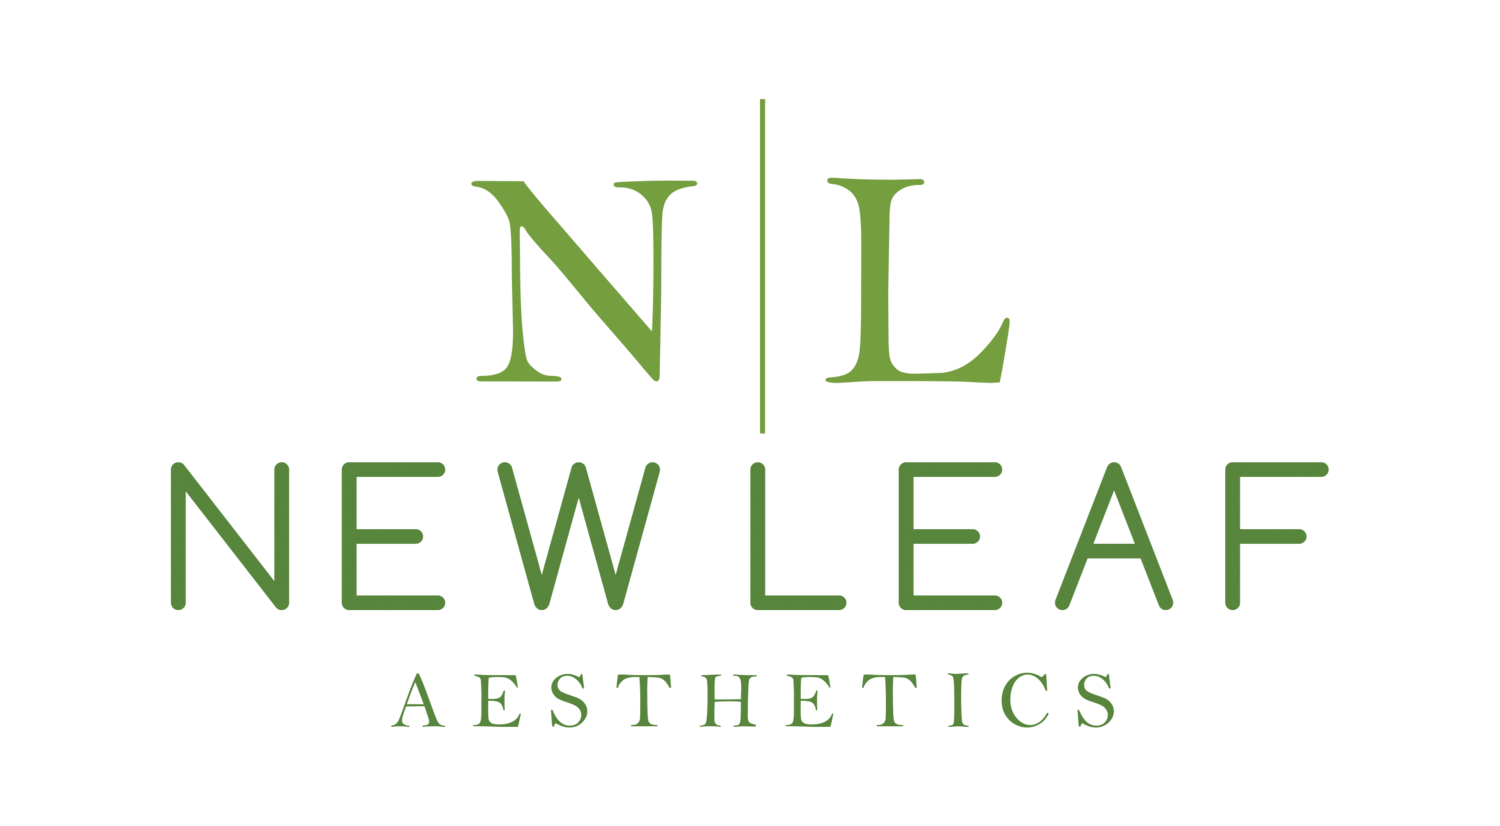 New Leaf Aesthetics LLC